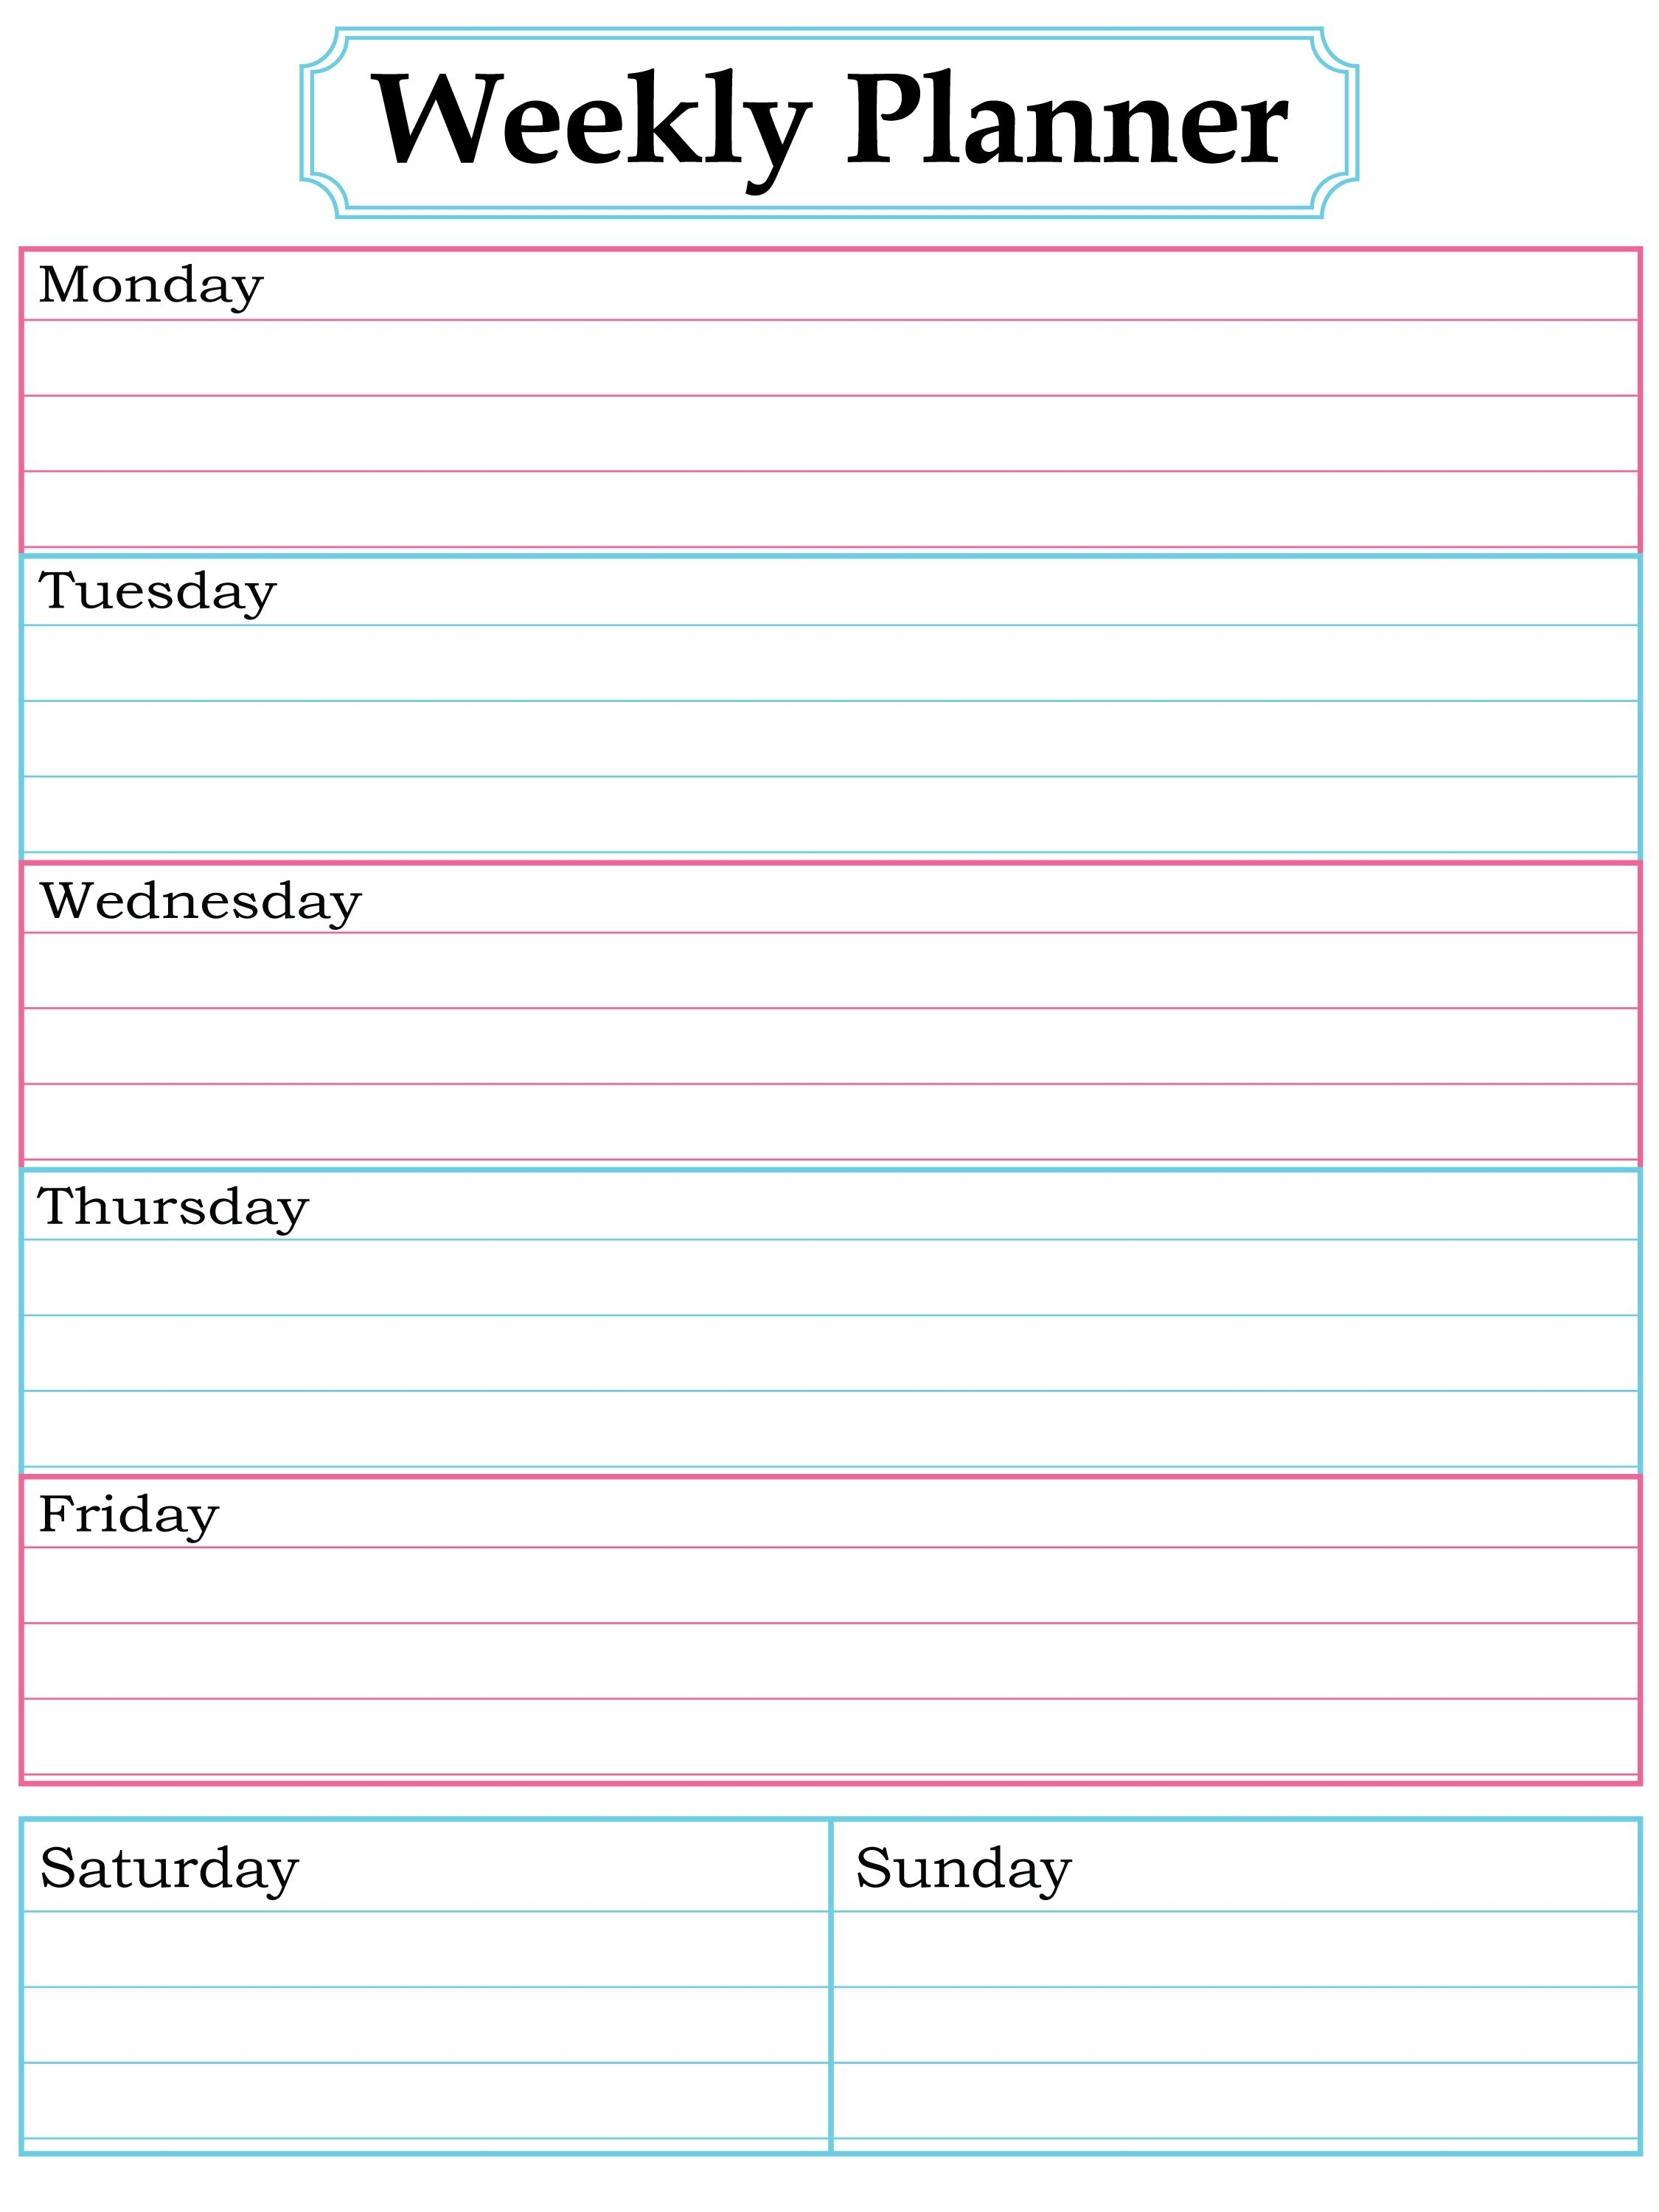 Weekly planner printable nice simple clean lines for Create planner online